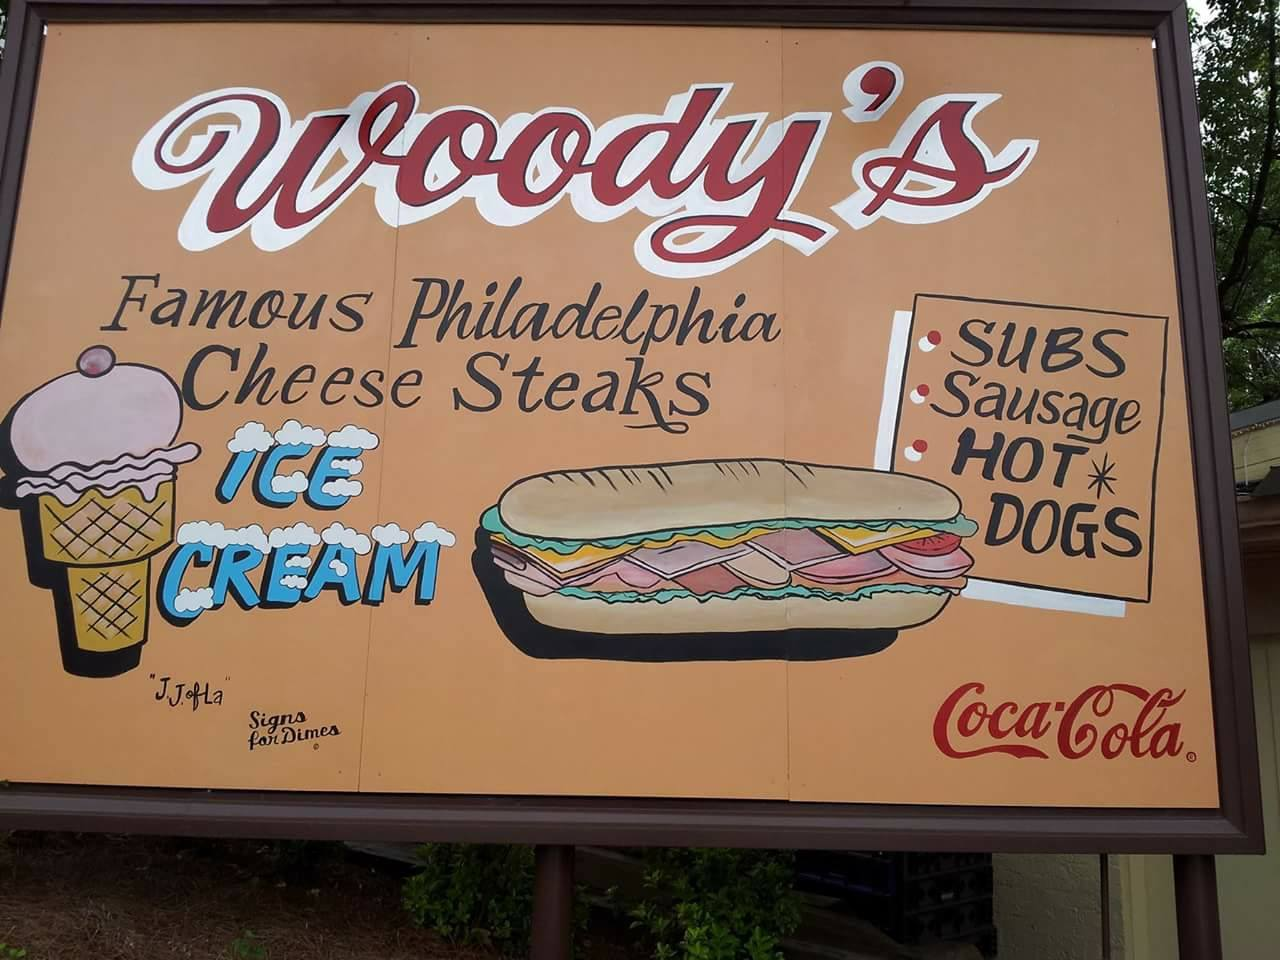 The Woody's famous Philadelphia cheese steaks sign with a painted ice cream cone, sandwich, and the Coca Cola logo